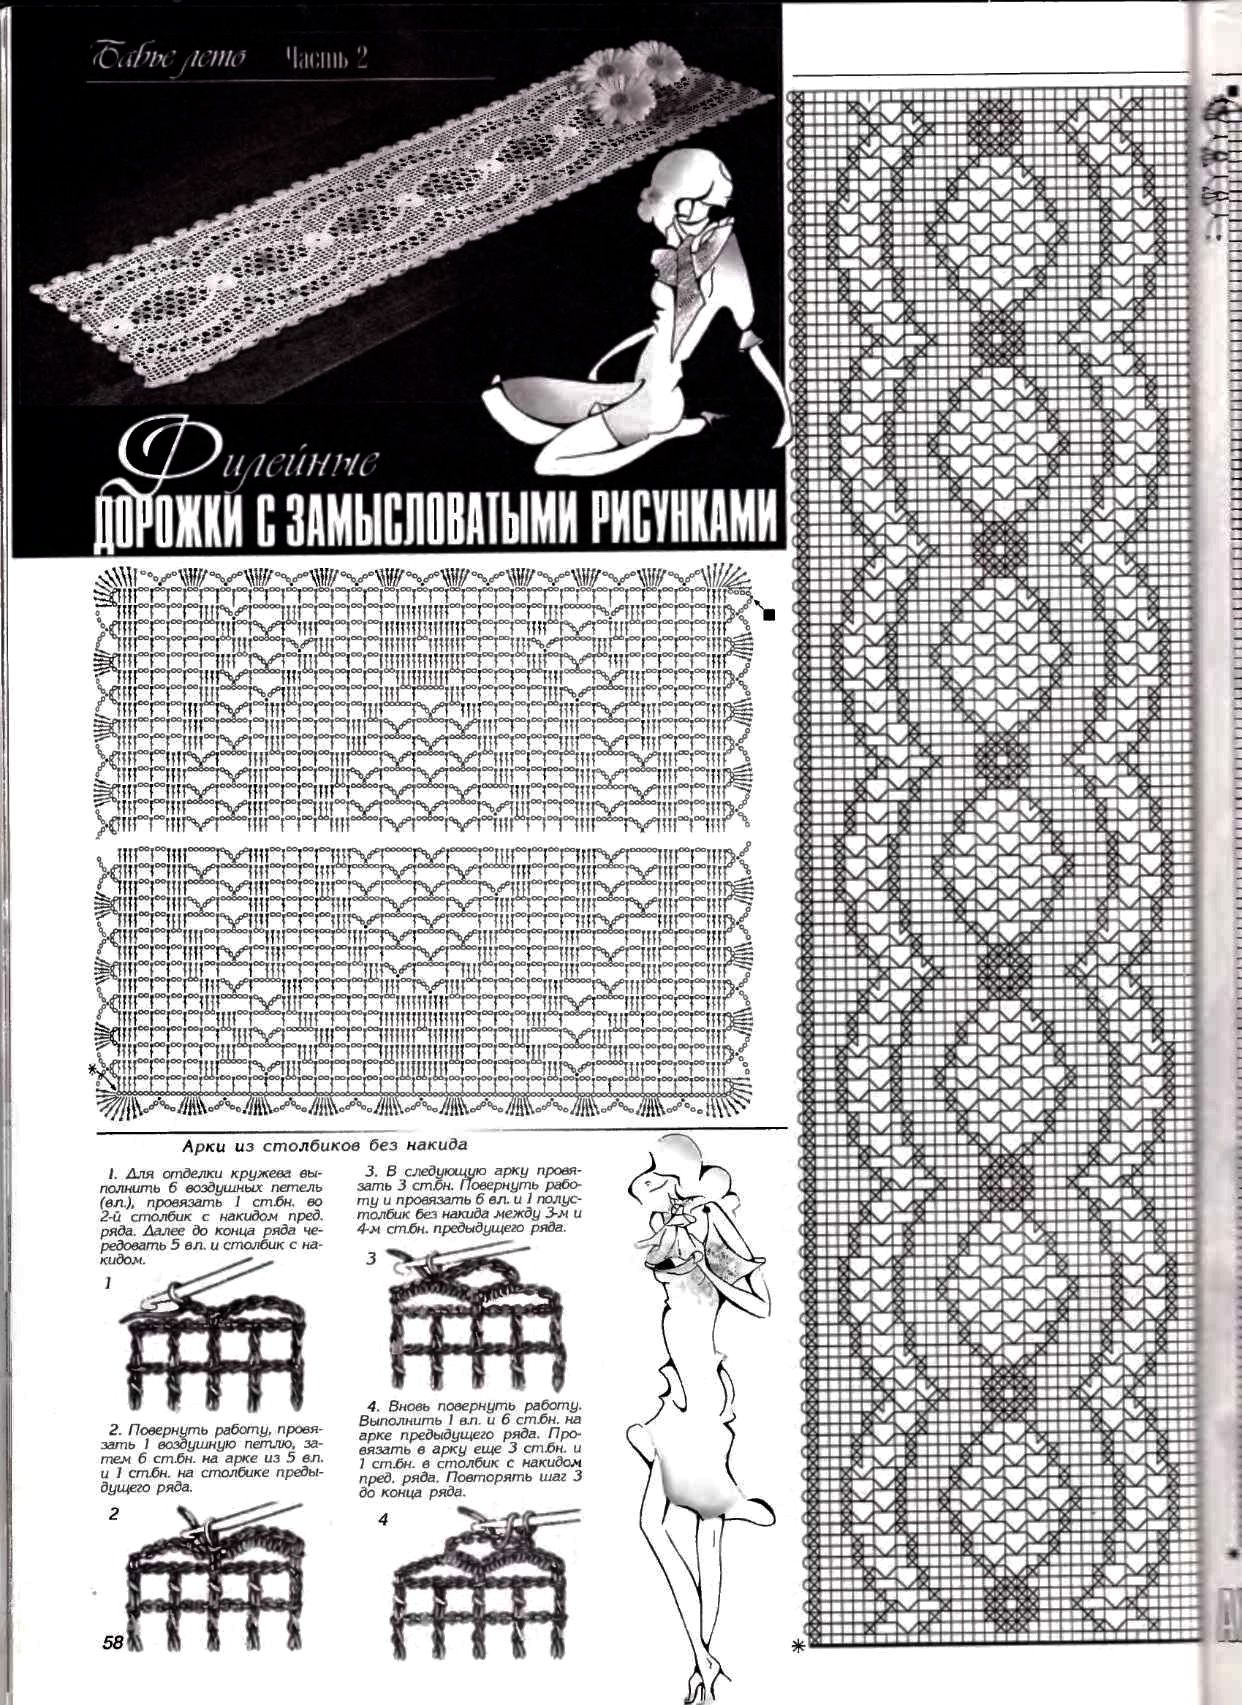 Pin By Re Lo On Doily Pinterest Fillet Crochet Doilies Diagram Patrones 2 Patterns And Chrochet